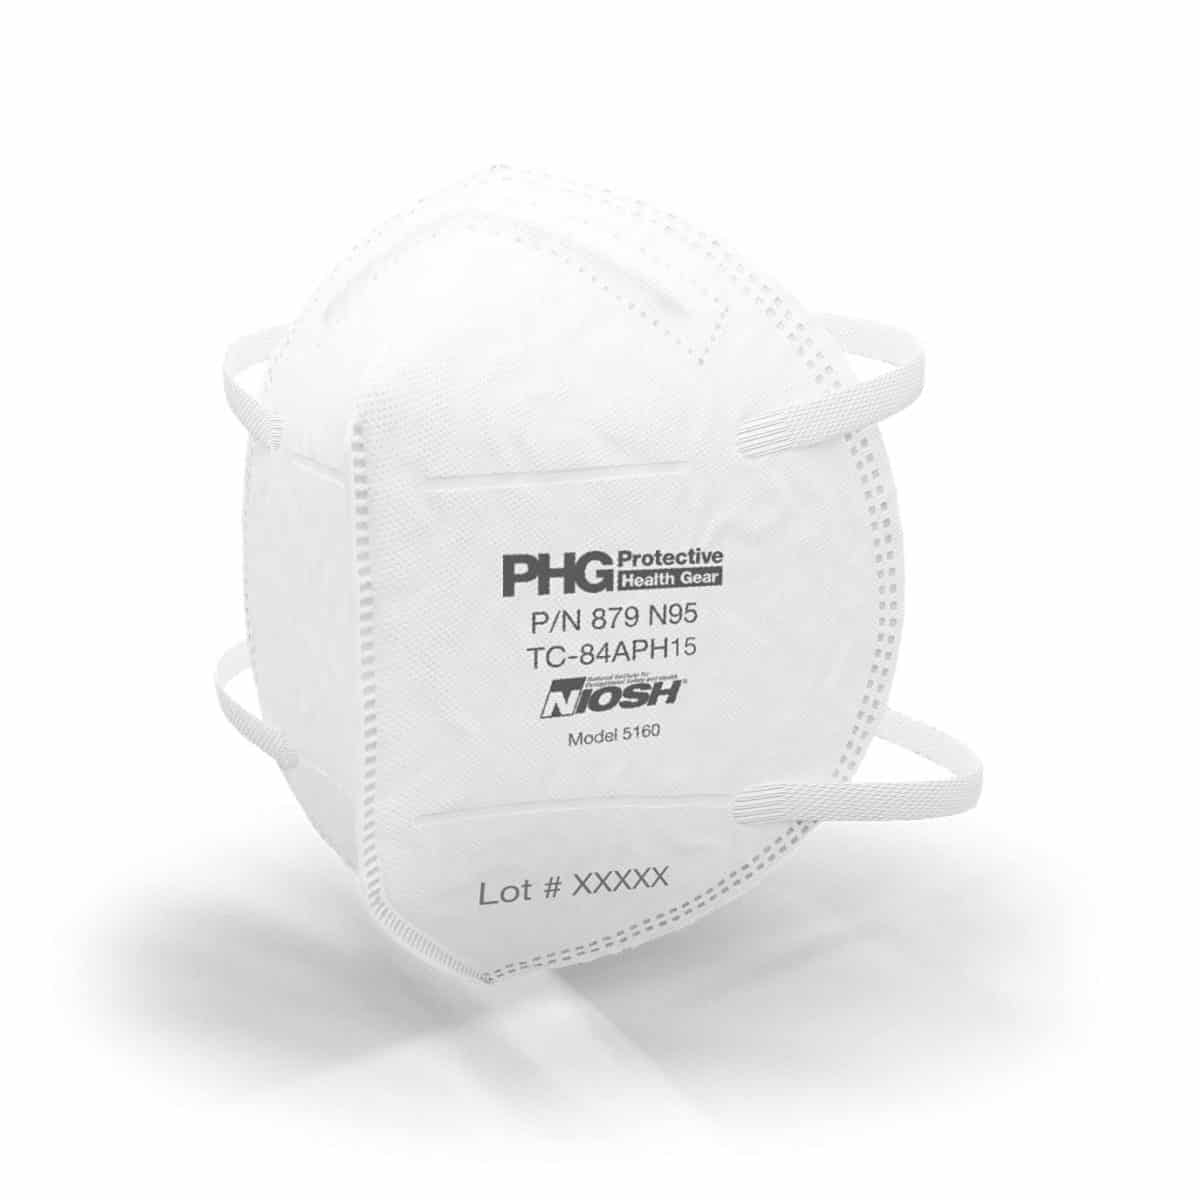 NIOSH Certified N95 Respiratory Particulate Filtering Face Mask, MADE IN THE USA, For Medical Professionals & Personal Protective Use, Comfortable Protection, Box of 20 Individually Wrapped Face Masks 5